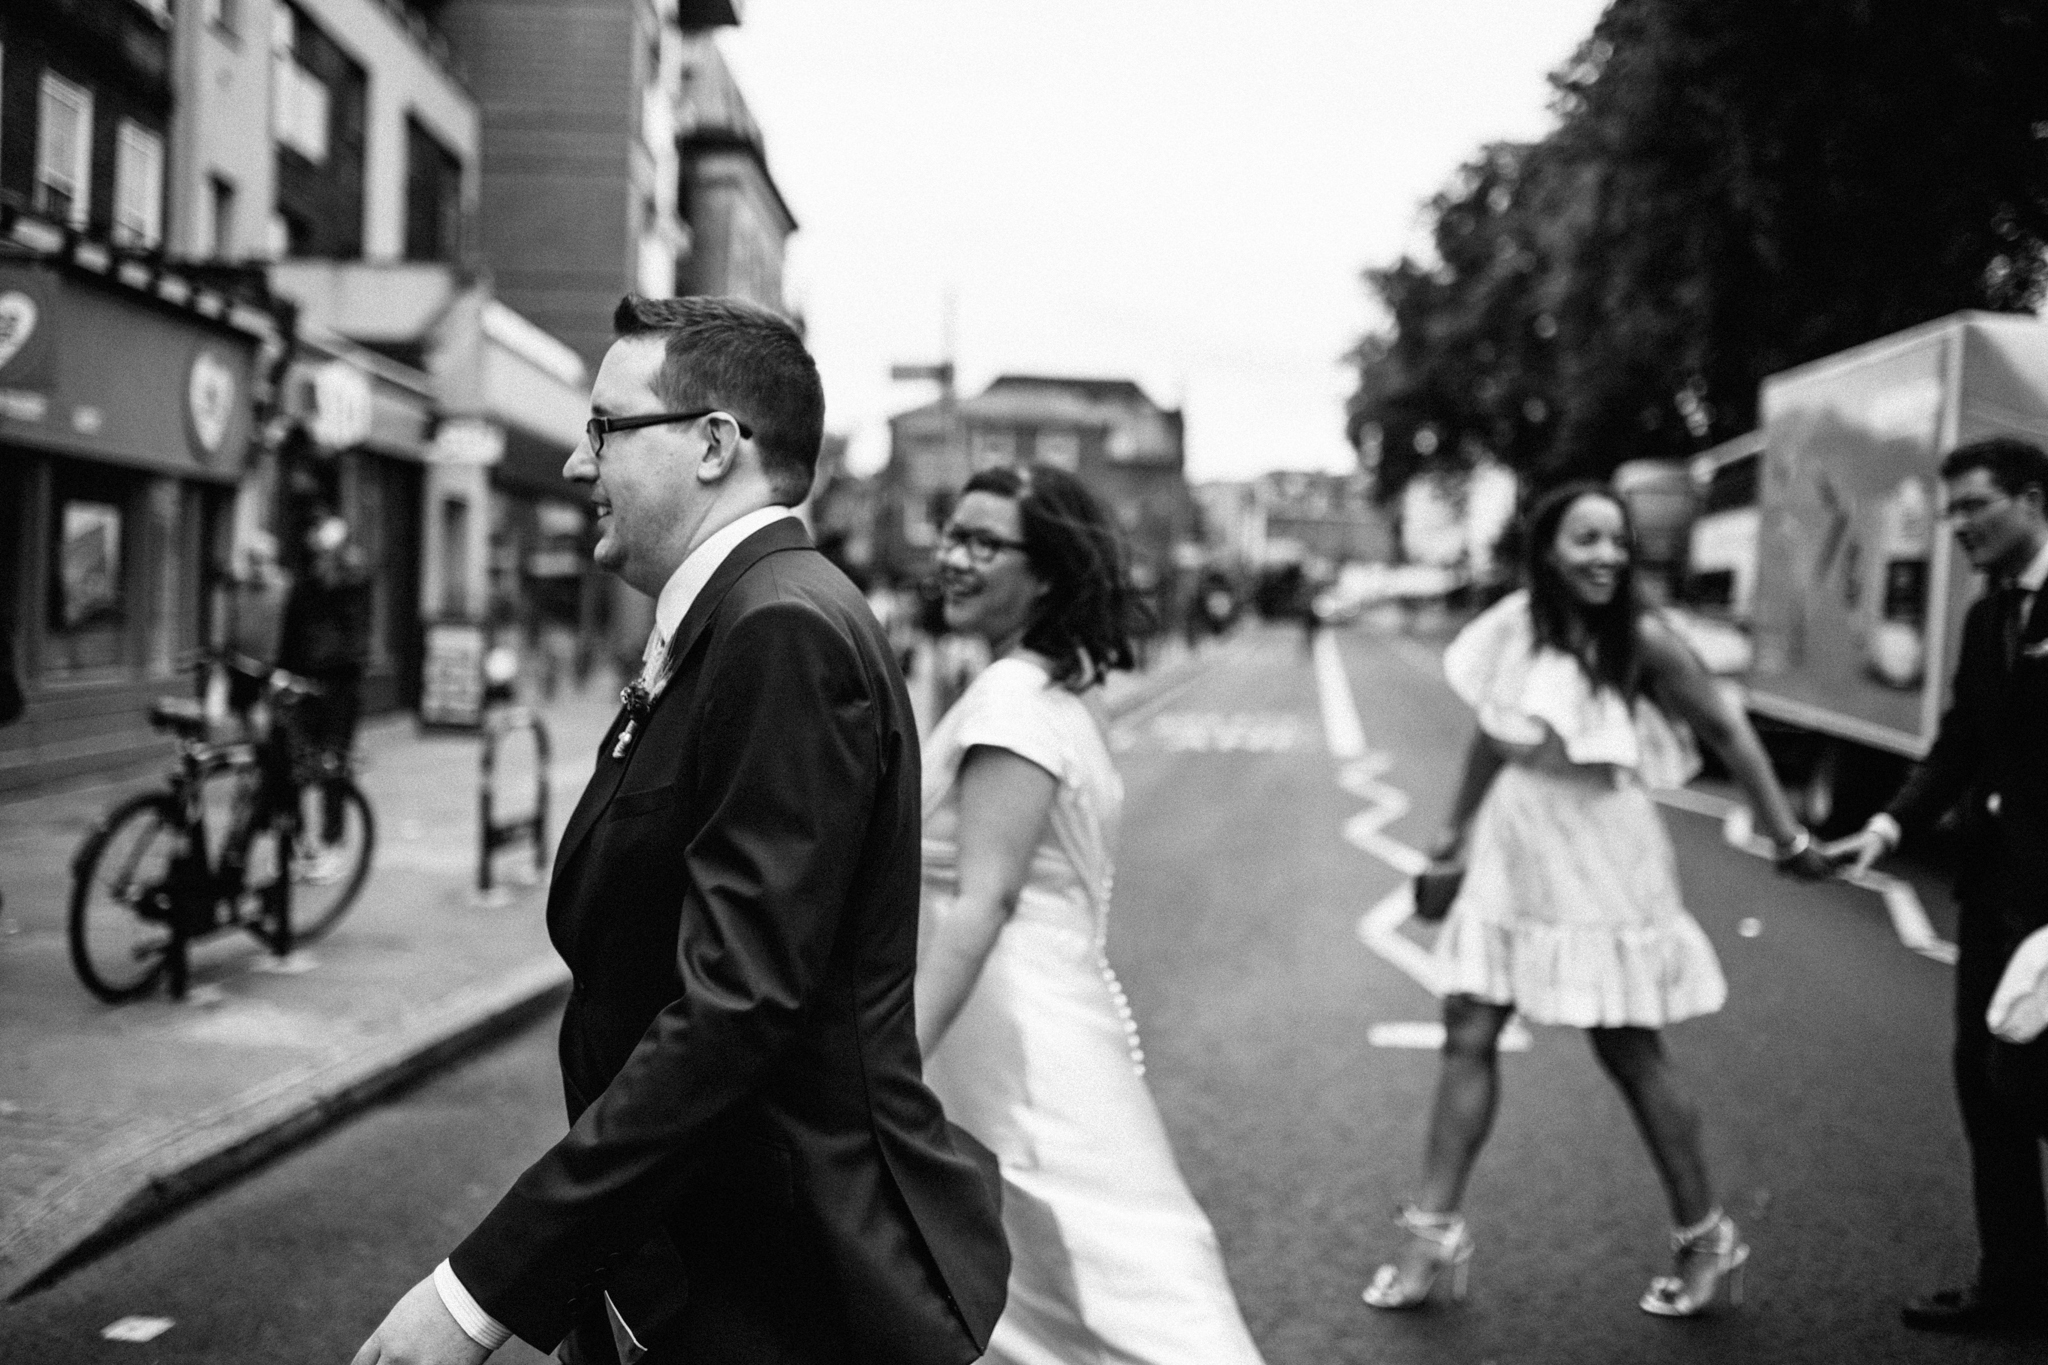 wedding in islington and narrowboat pub and angel area in london wedding photographer